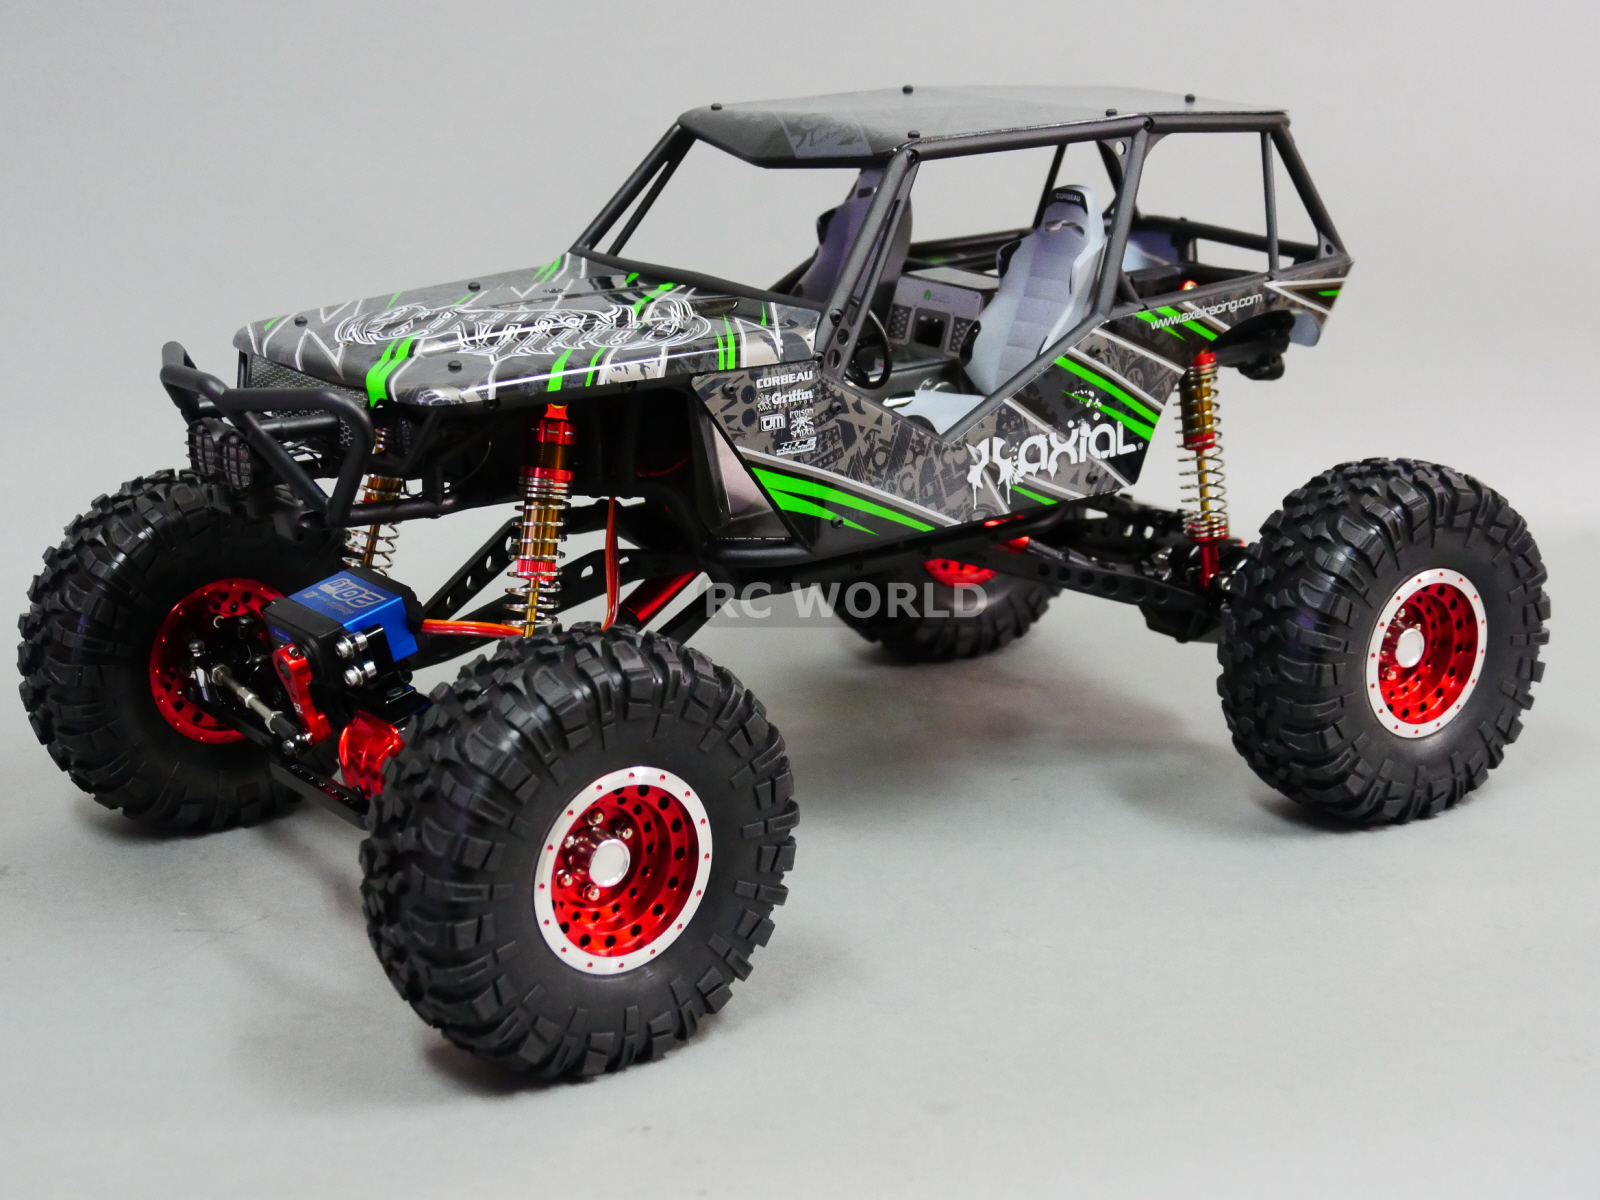 hobby grade rc trucks with 201648486786 on Buying Your First Rc Car Should I Buy Nitro Or Electric moreover Extreme Xgx 3 Buggy 2 together with 192319186233 furthermore Extreme Xgx 3 Buggy 2 furthermore 201920428169.